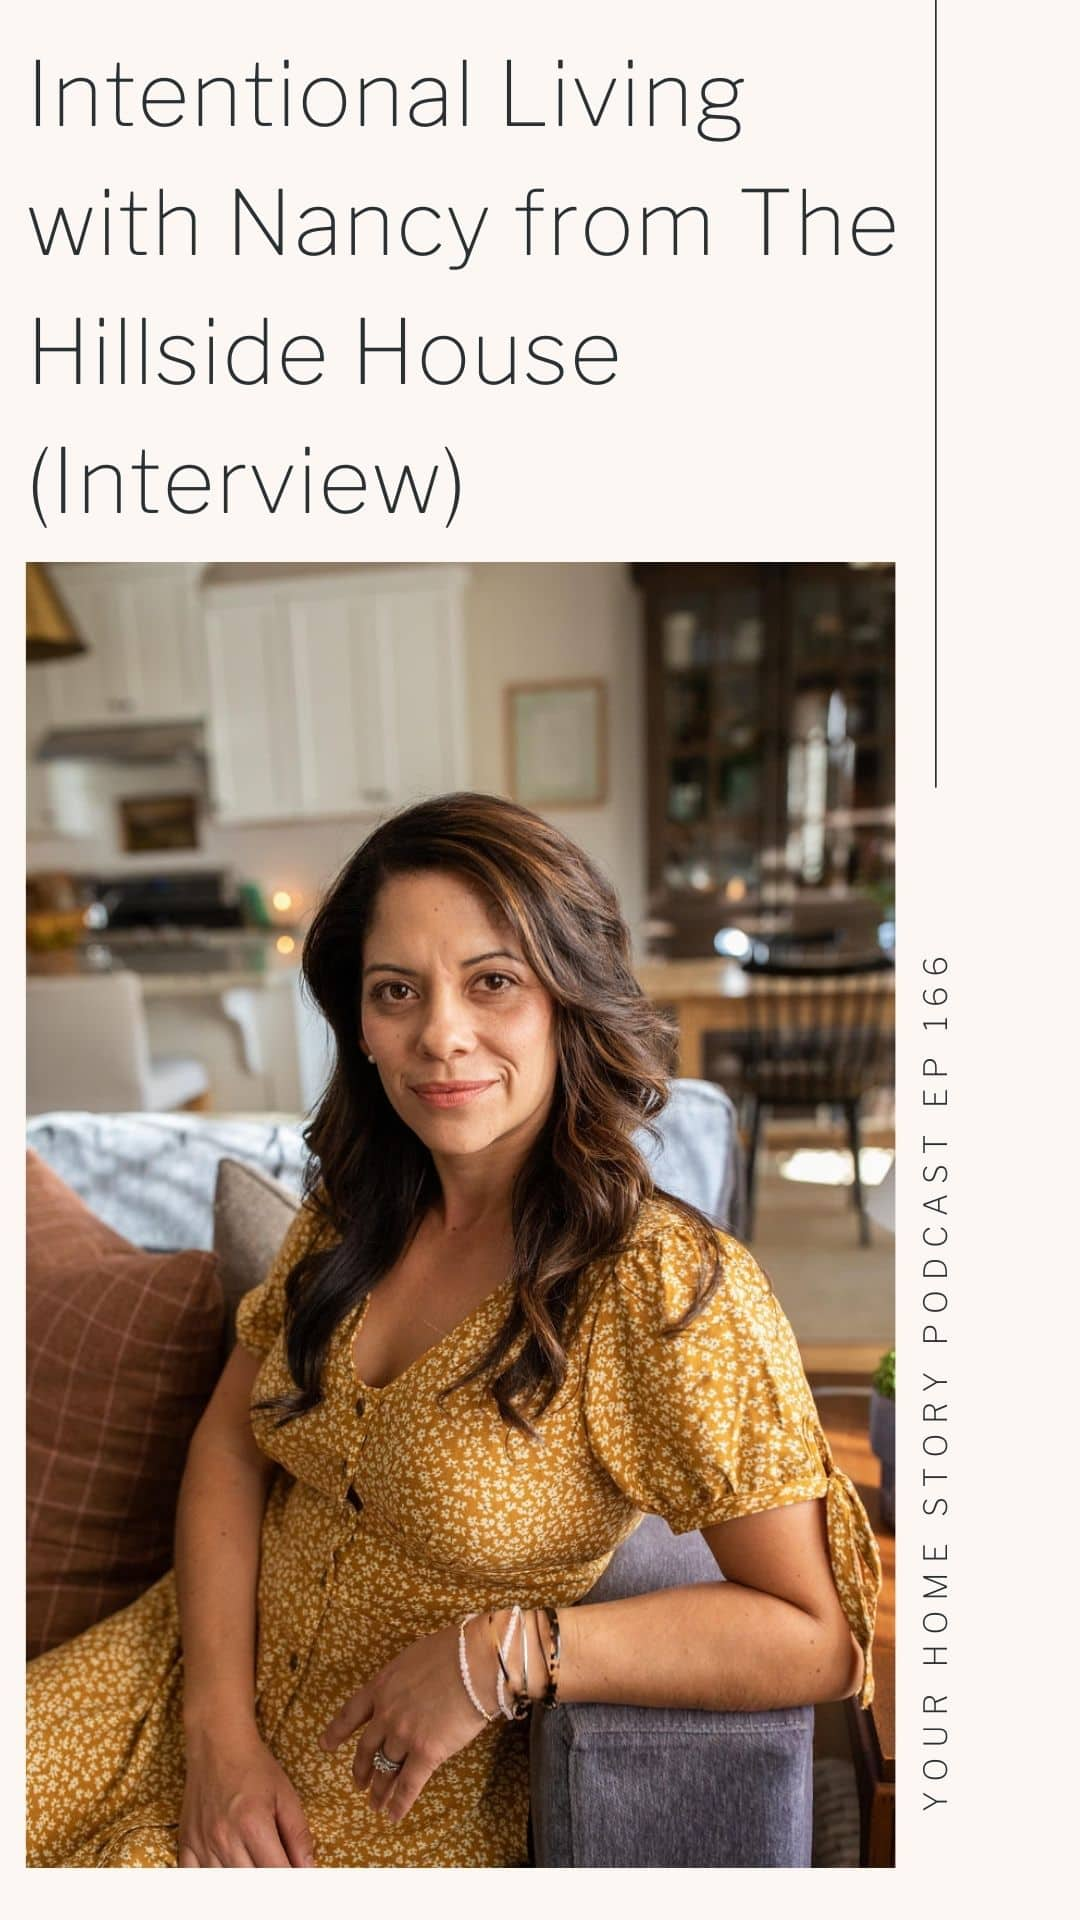 Nancy from The Hillside House chatting about all things intentional living and design.